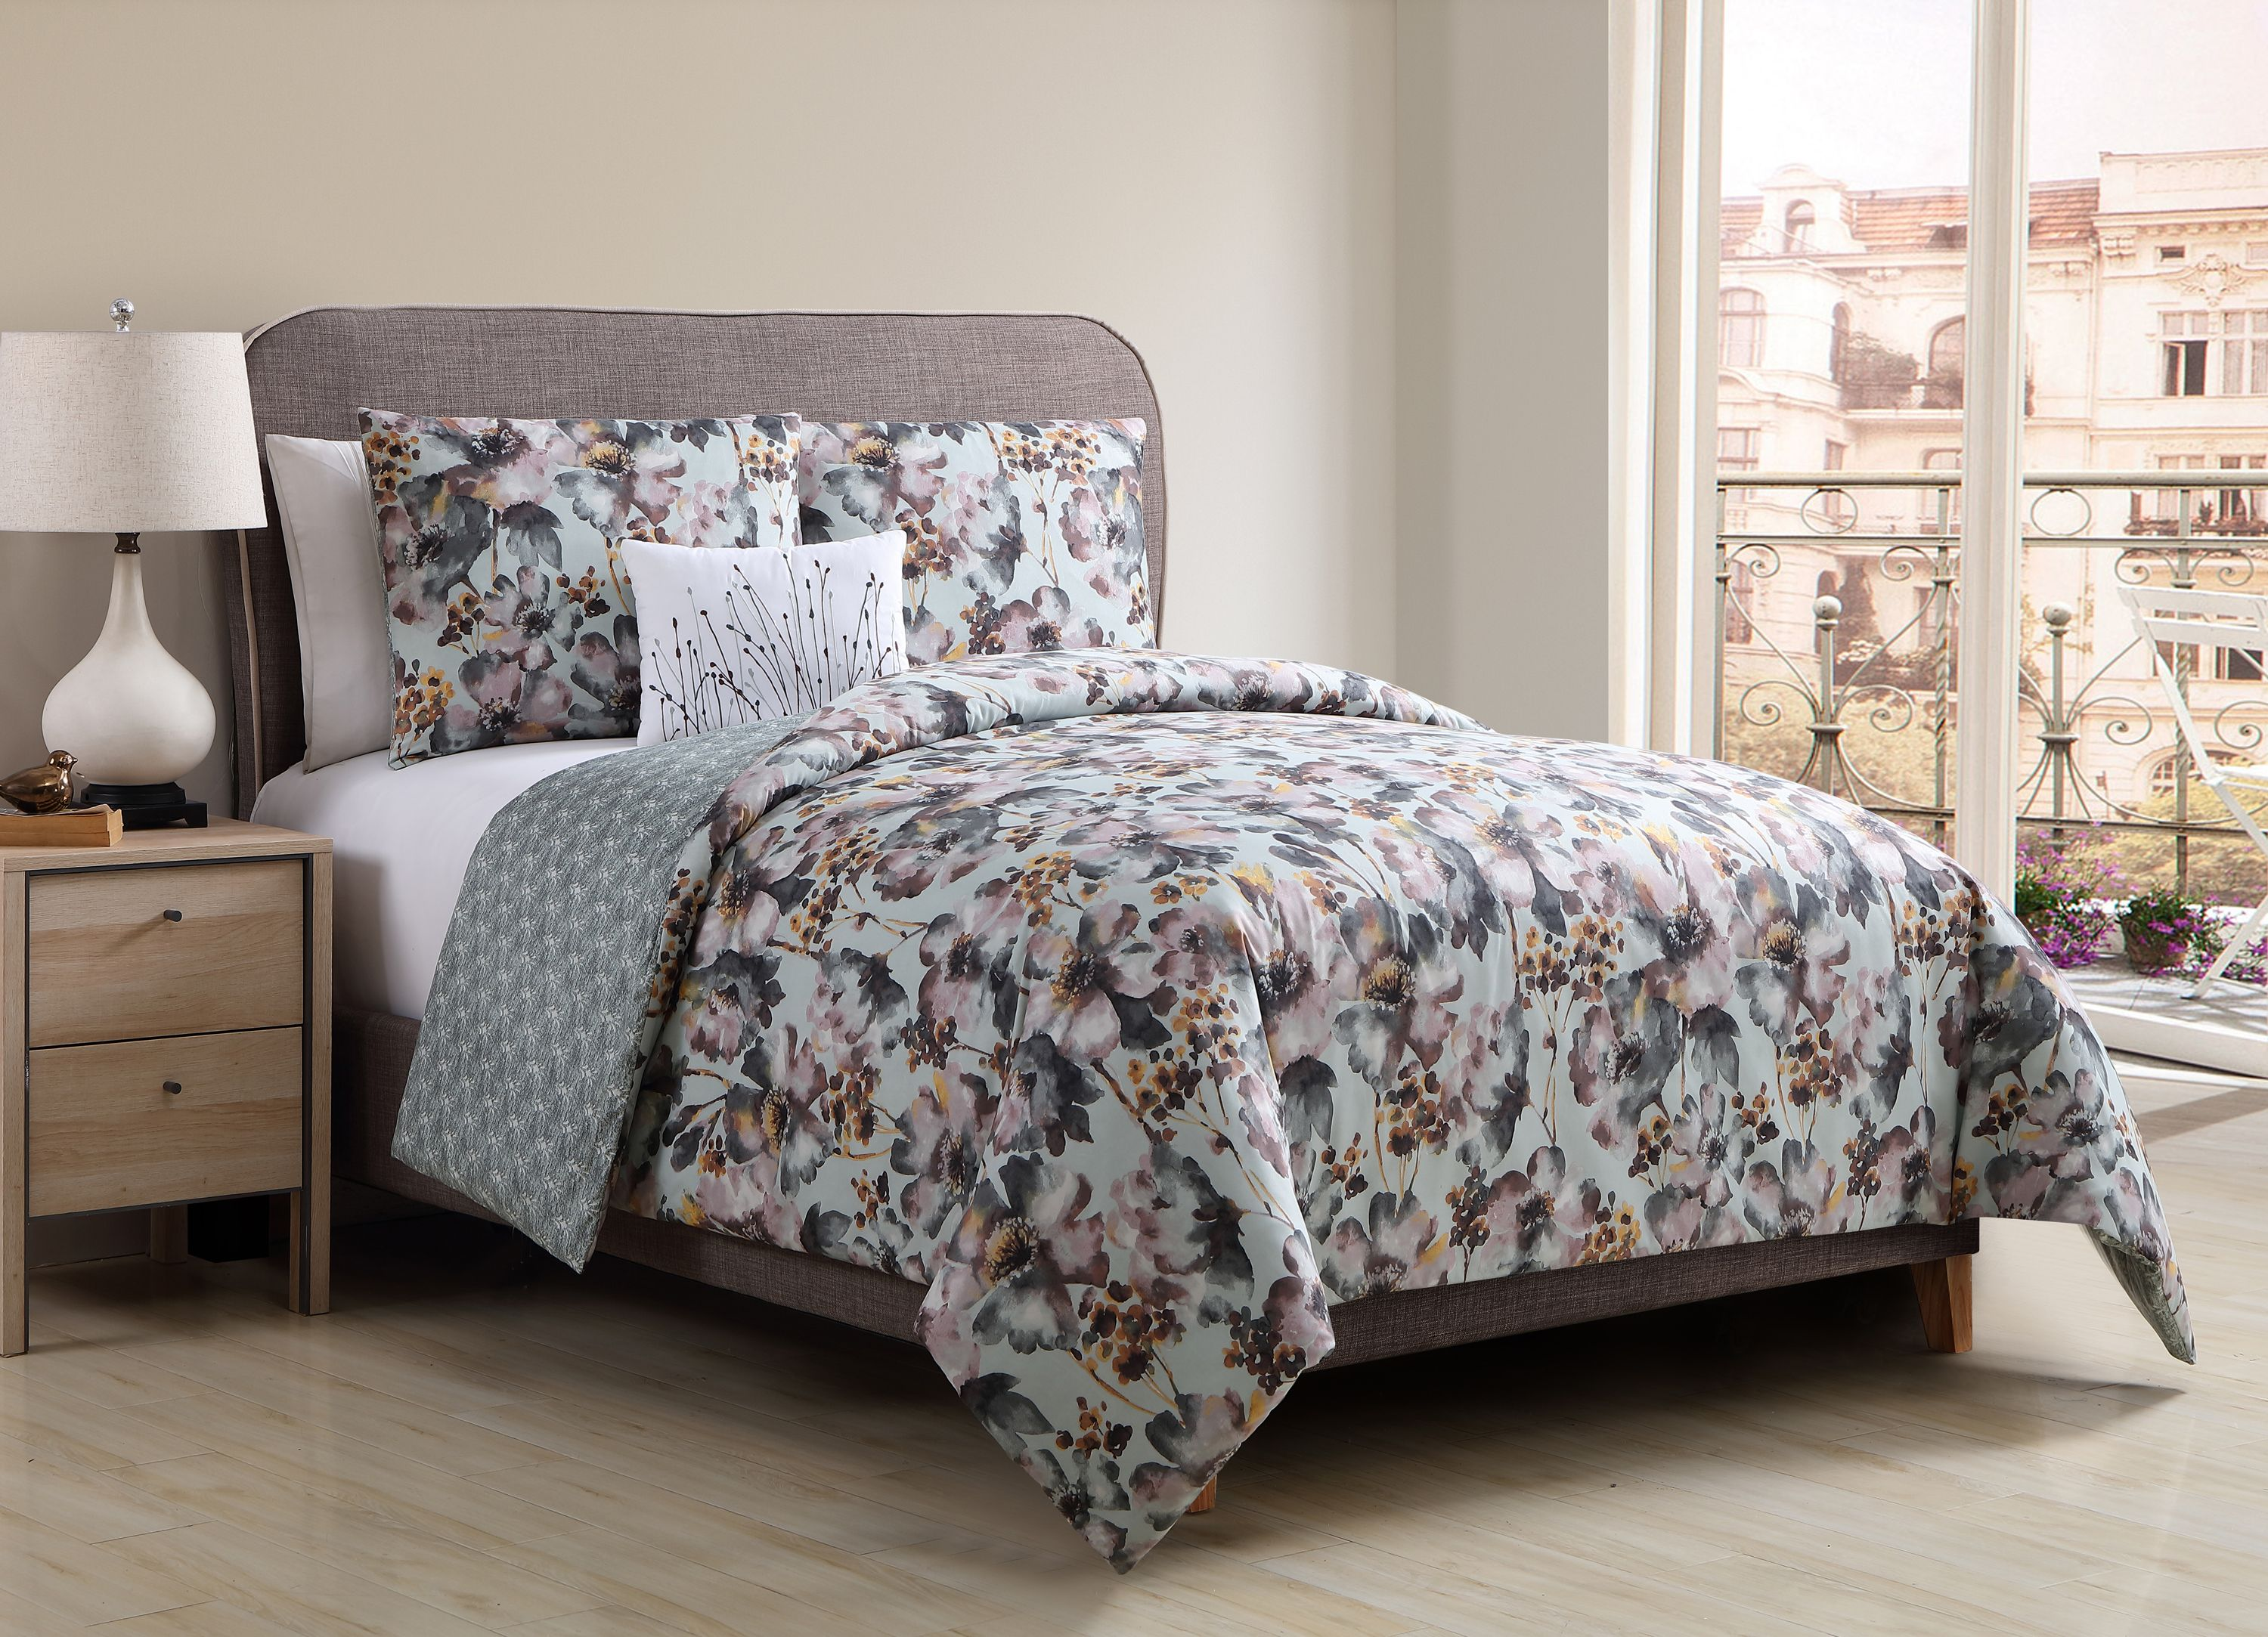 Better Homes And Gardens Floral Bouquet 4-Piece Bedding